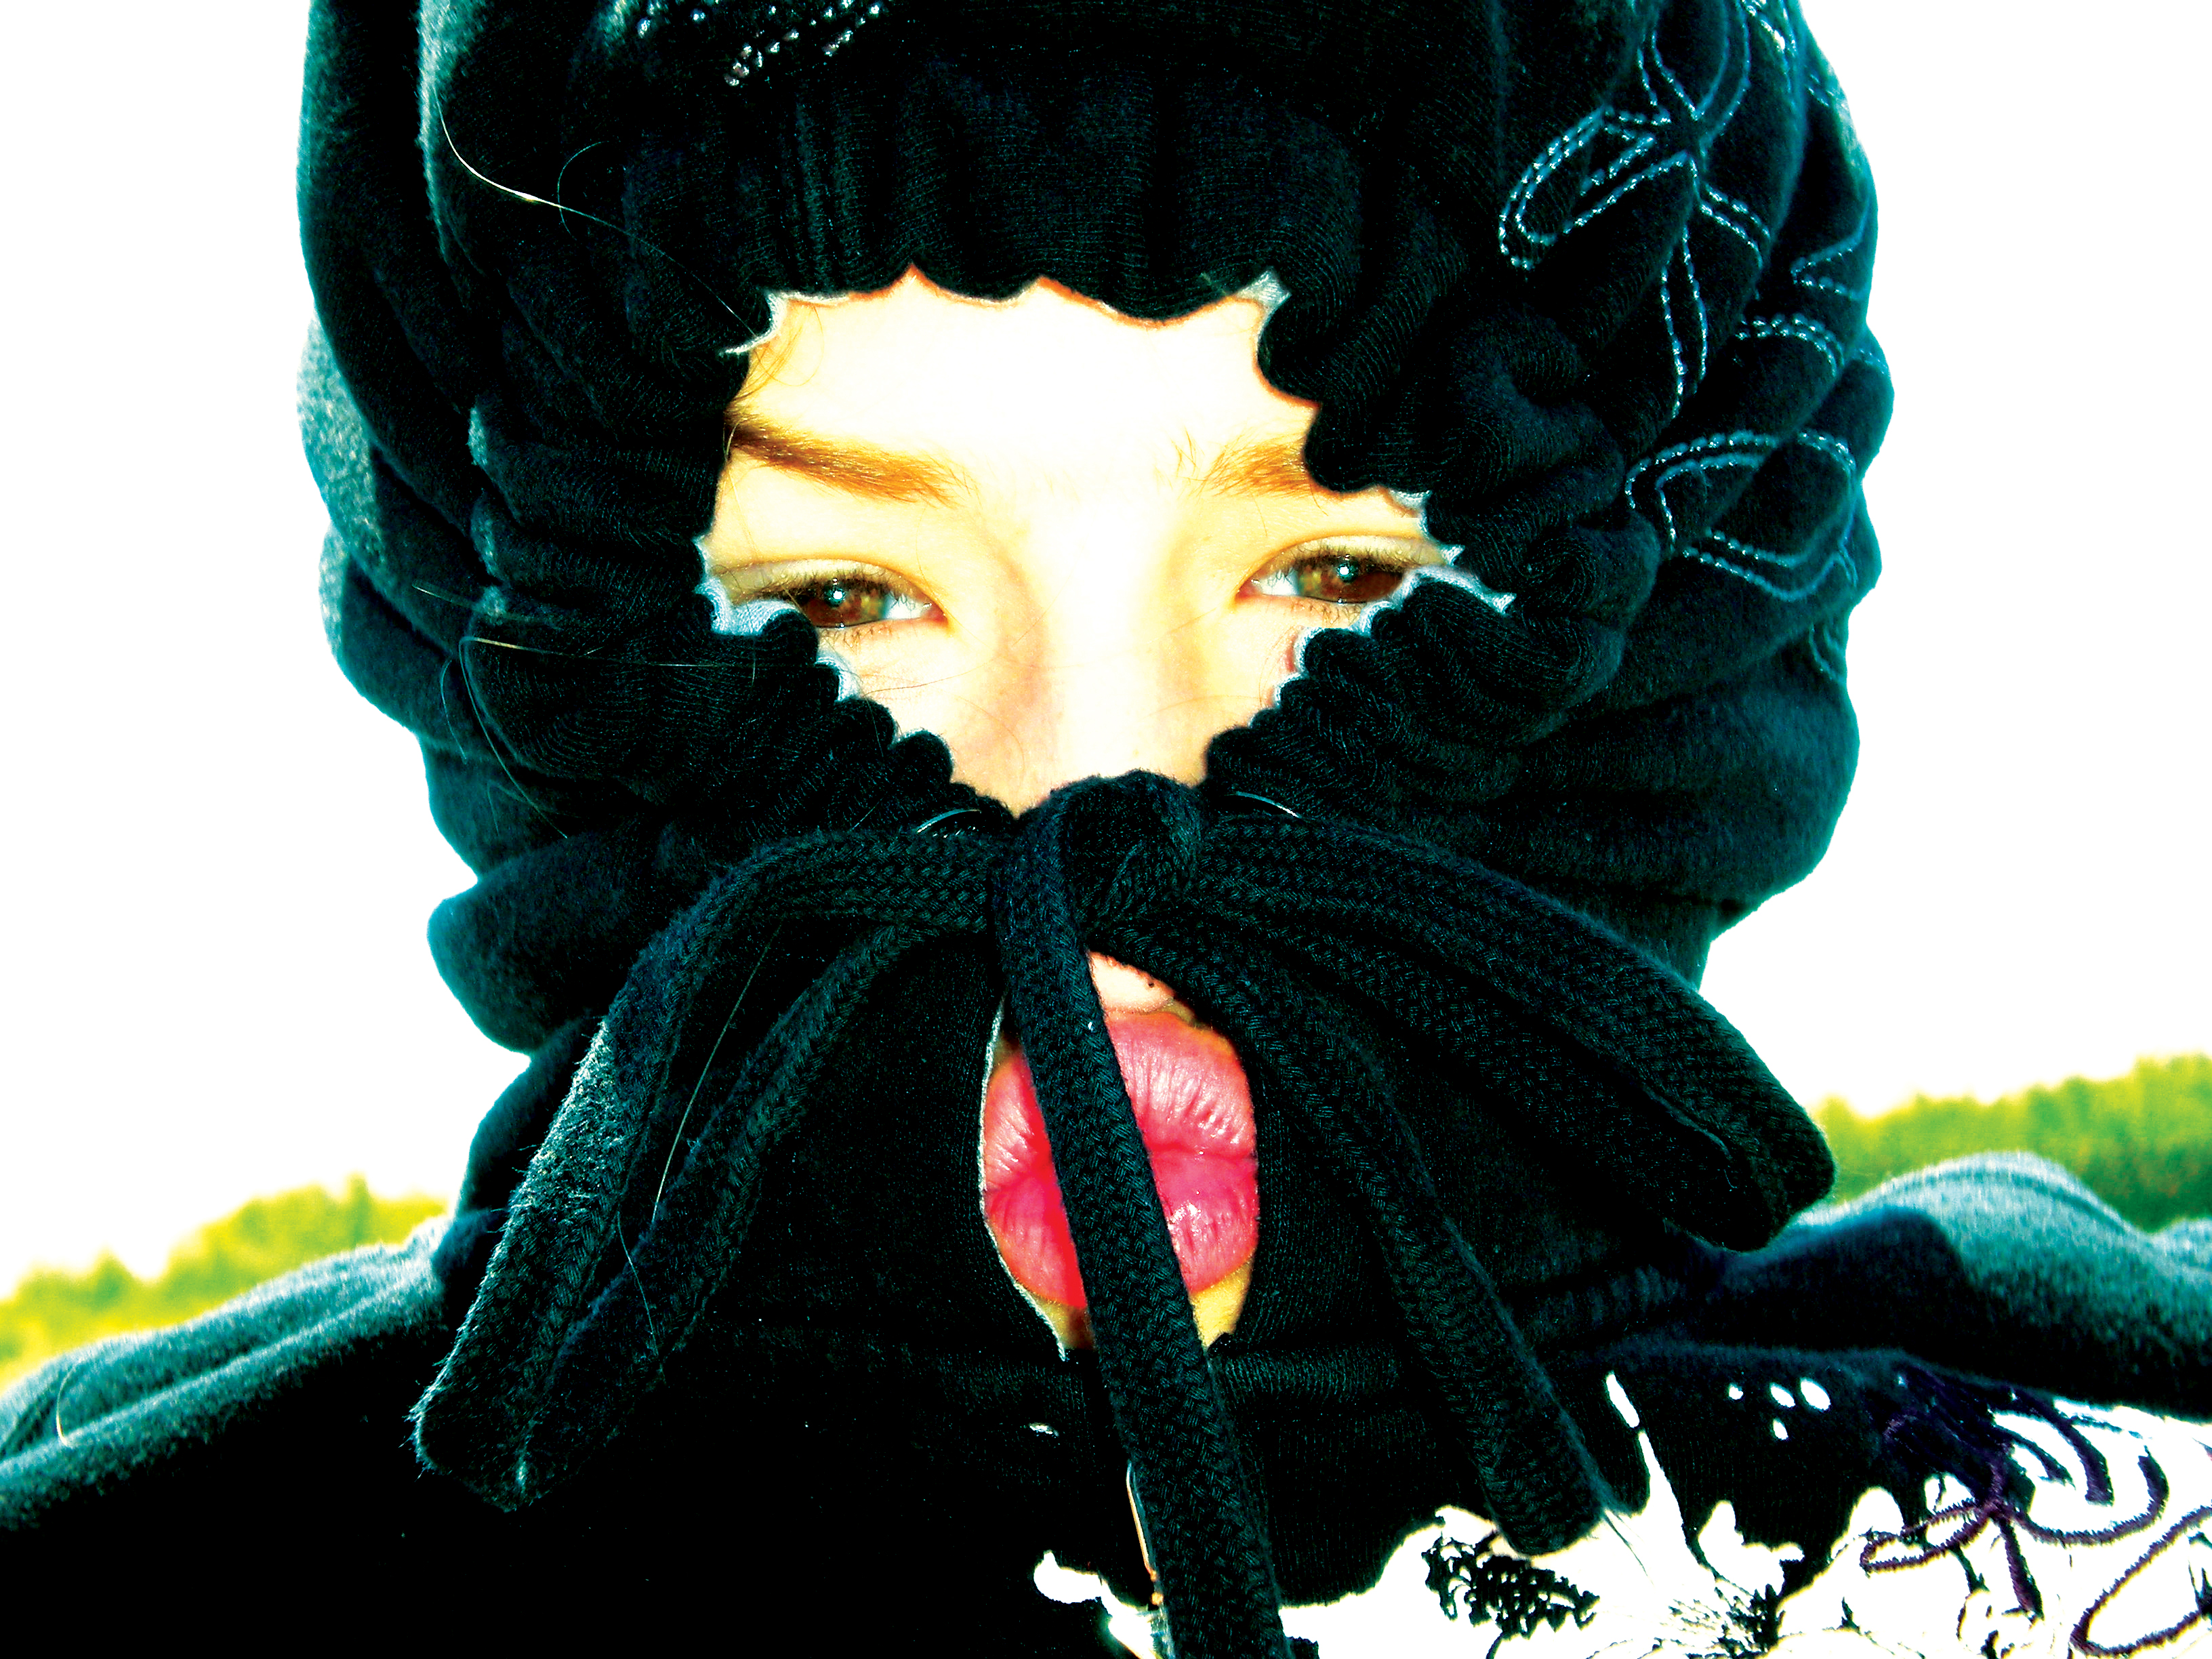 teen in hoody covering face